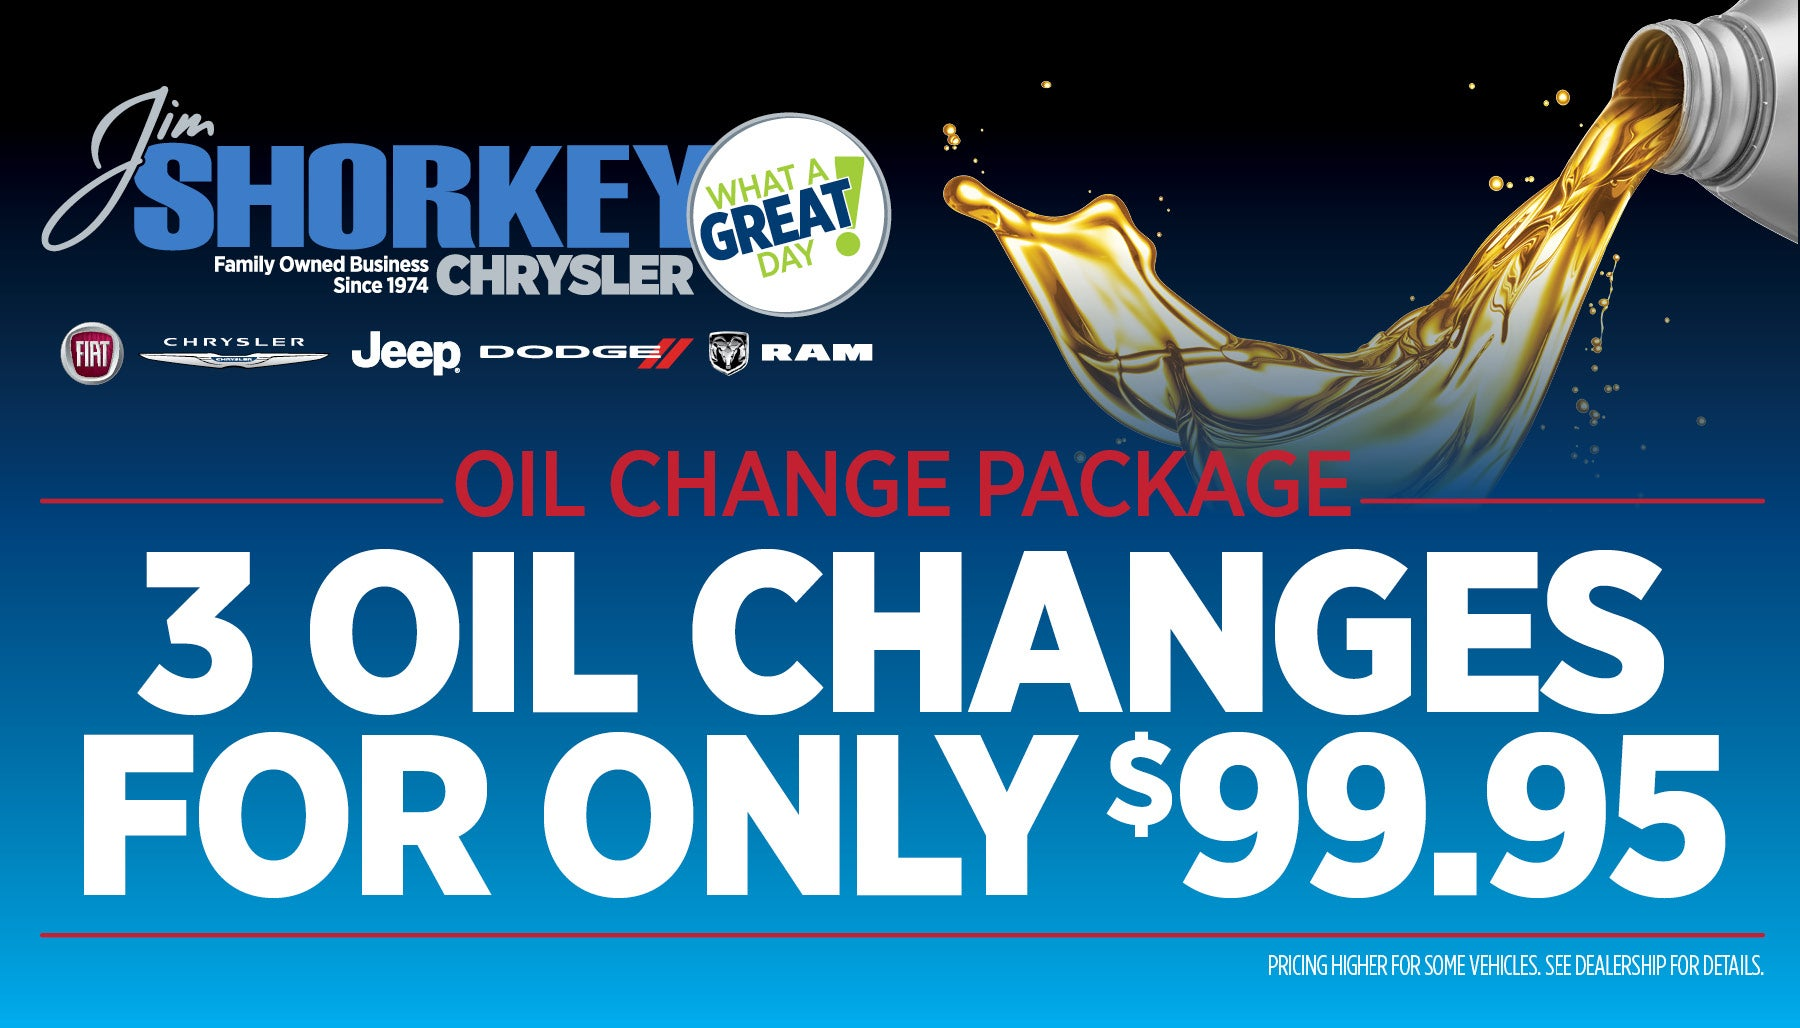 Oil Change Specials >> Oil Change Package Special Cdjrf North Huntingdon Specials North